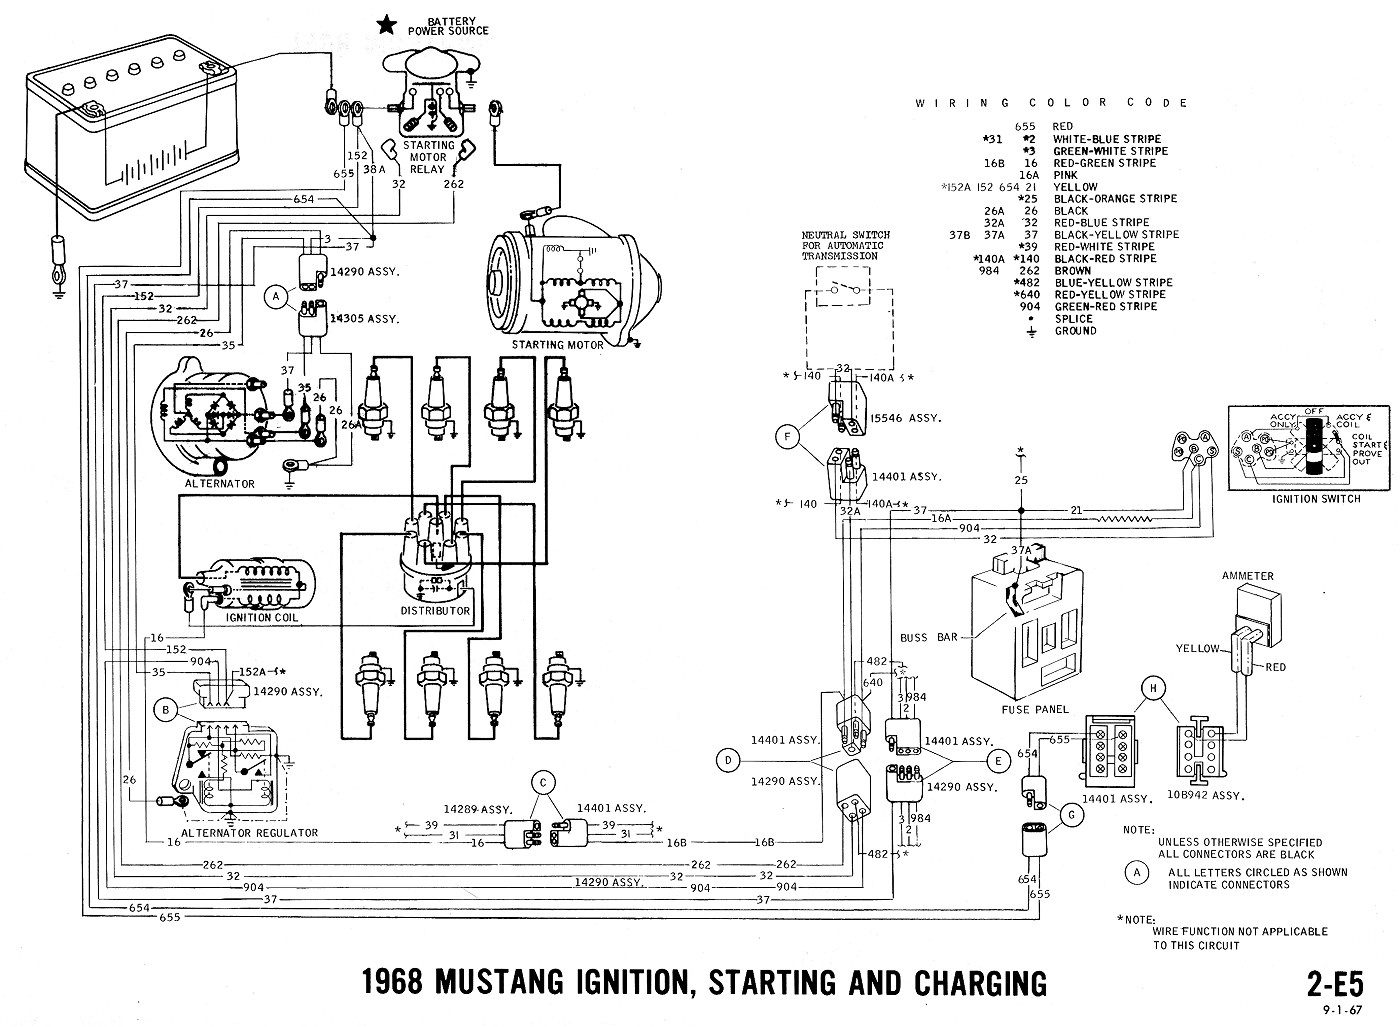 E5 1968 mustang wiring diagrams evolving software 1966 mustang headlight wiring diagram at readyjetset.co